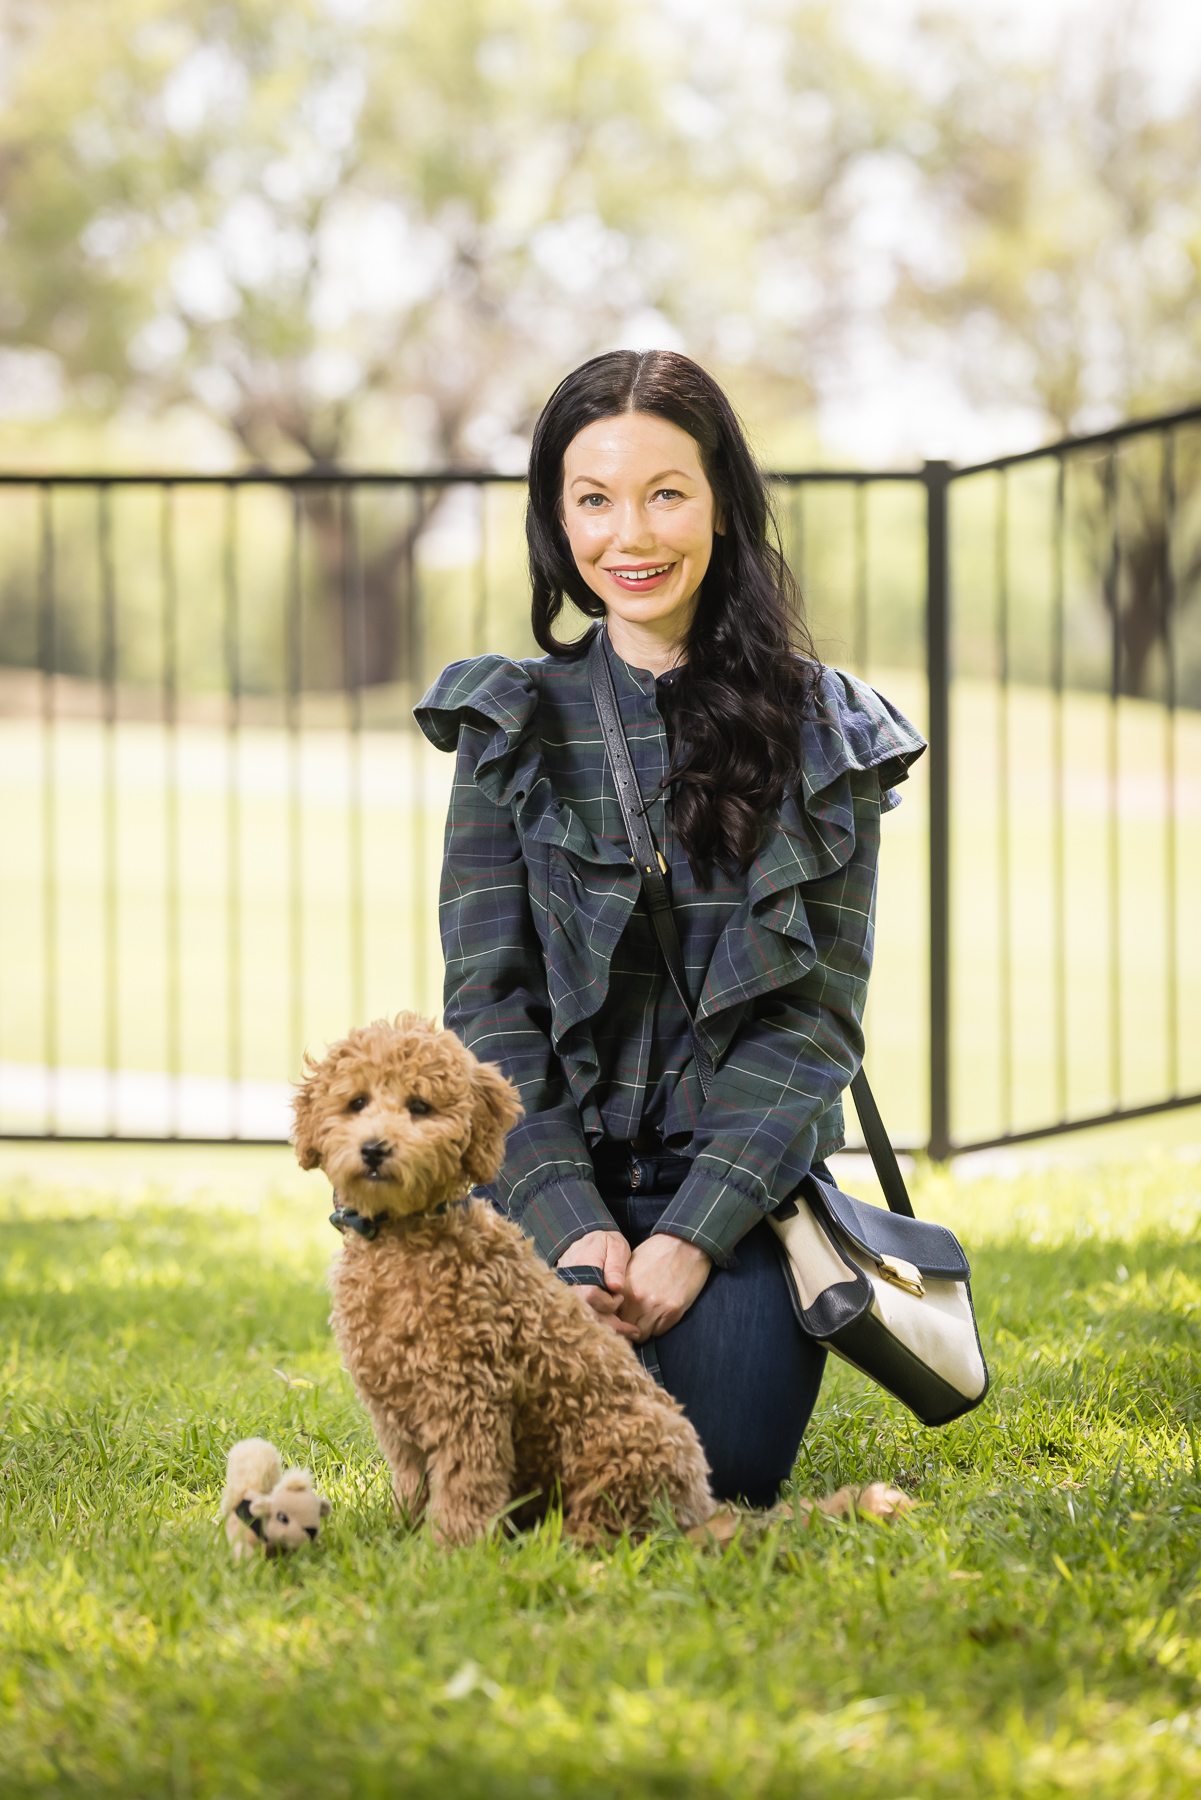 New Puppy, Baby Goldendoodle, Tartan Blouse, Denim, Matching Mom and Puppy outfit | Charlie Cupcake by popular Dallas lifestyle blog, Pretty Little Shoppers: image of a woman wearing a plaid ruffle top and jeans and kneeling next to her goldendoodle puppy.